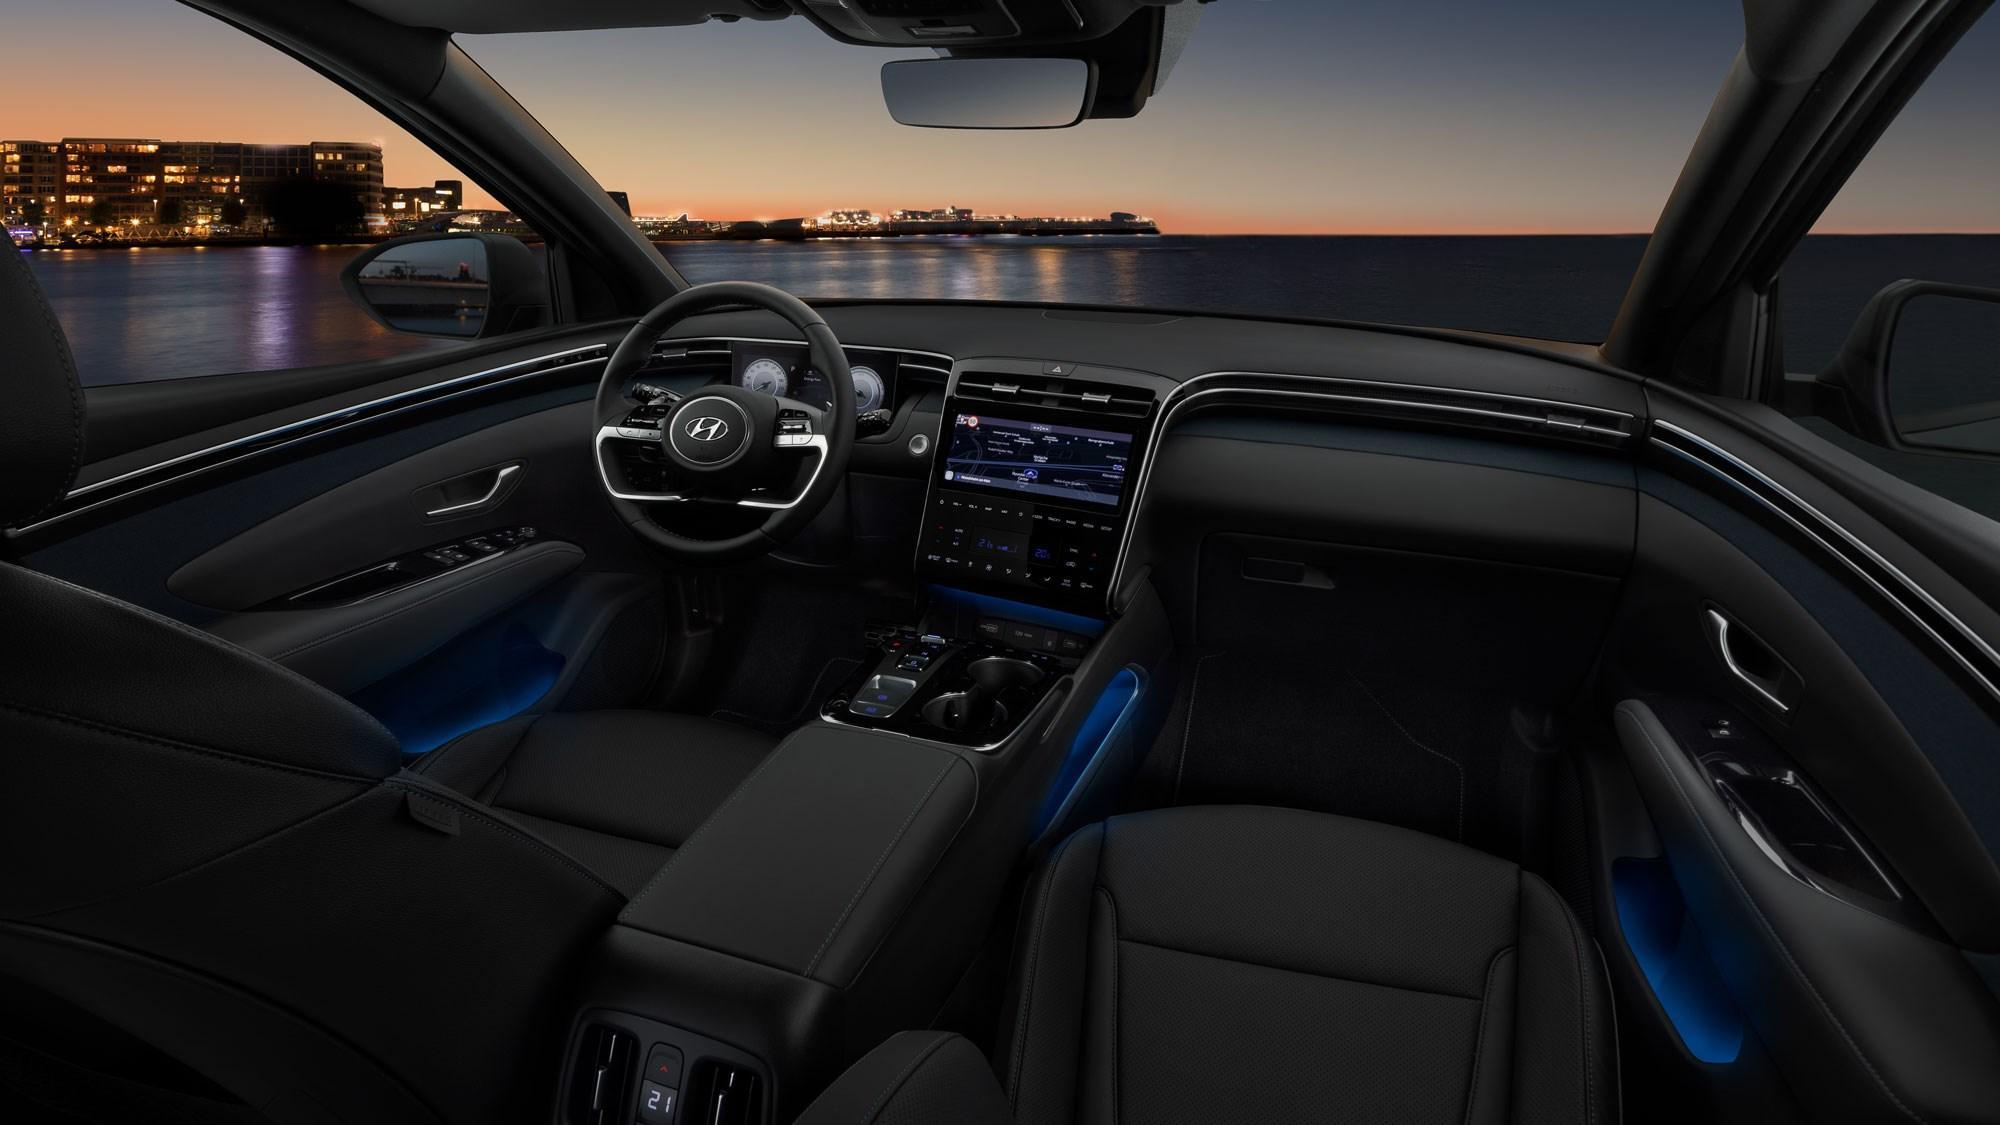 All-New Hyundai Tucson Interior Design